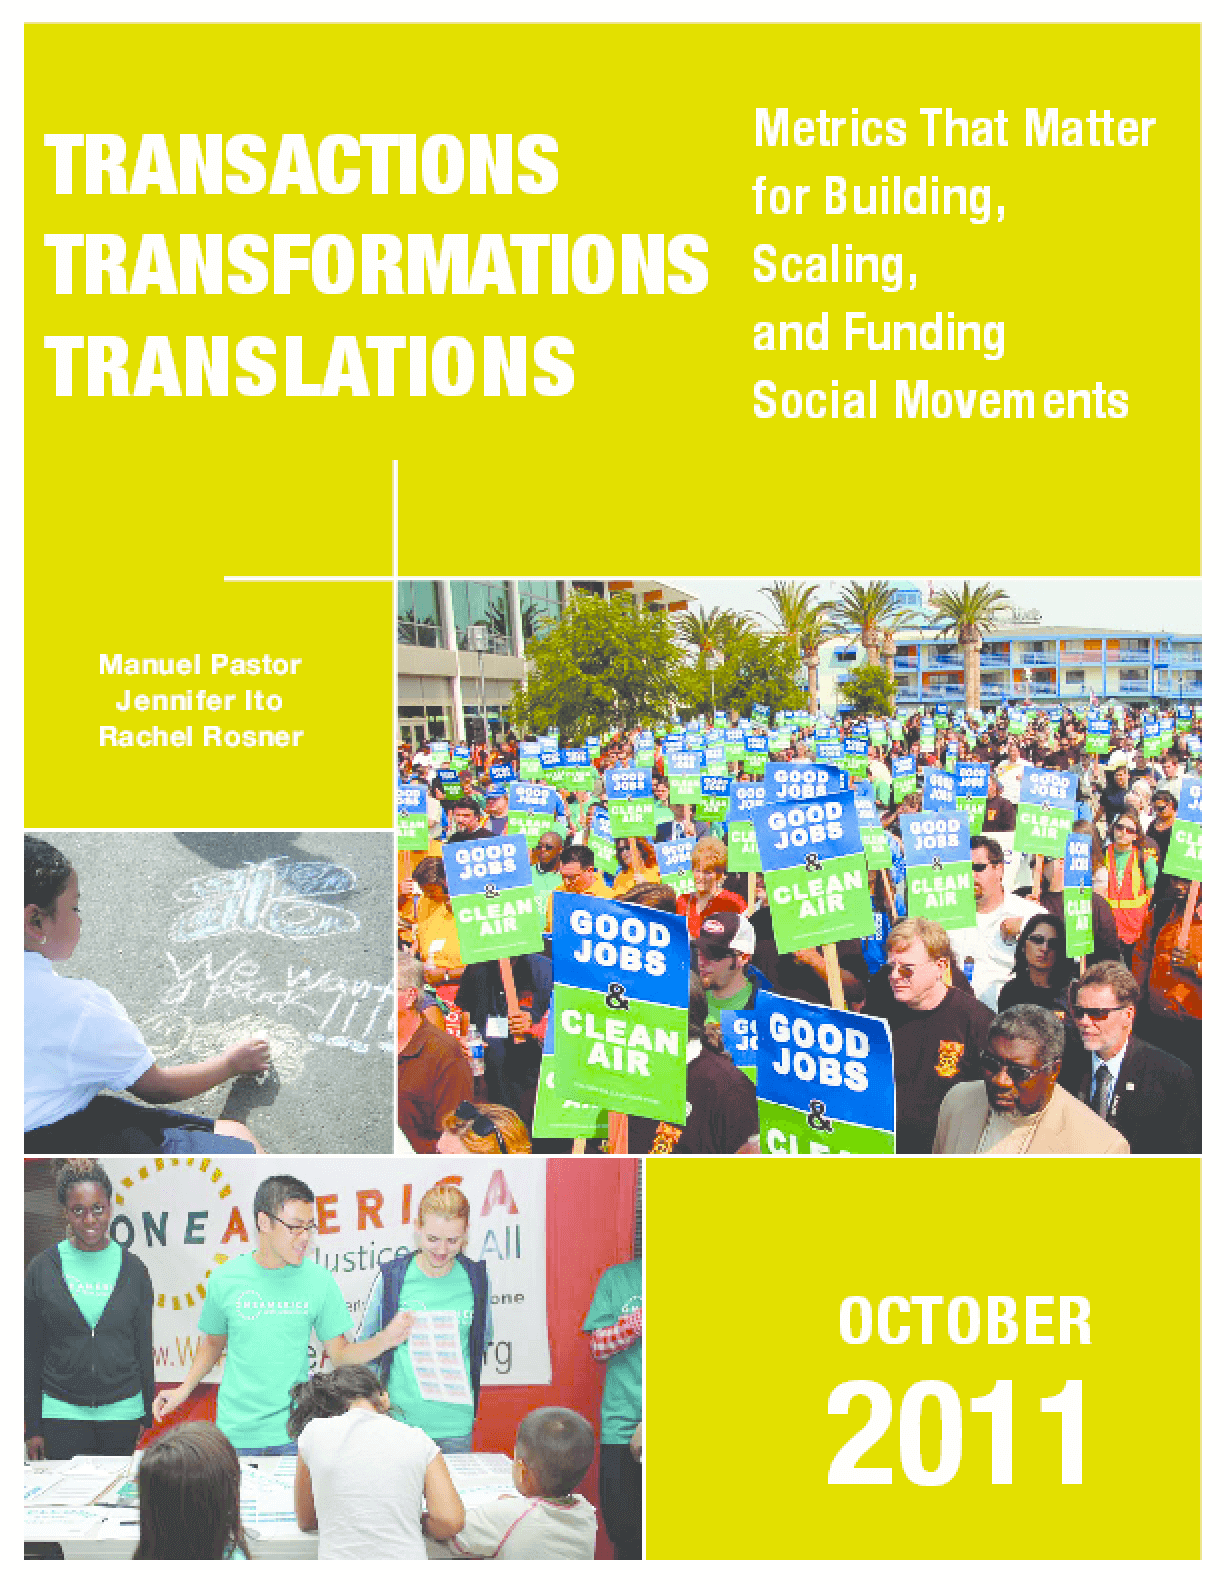 Transactions, Transformations, Translations: Metrics that Matter for Building, Scaling, and Funding Social Movements